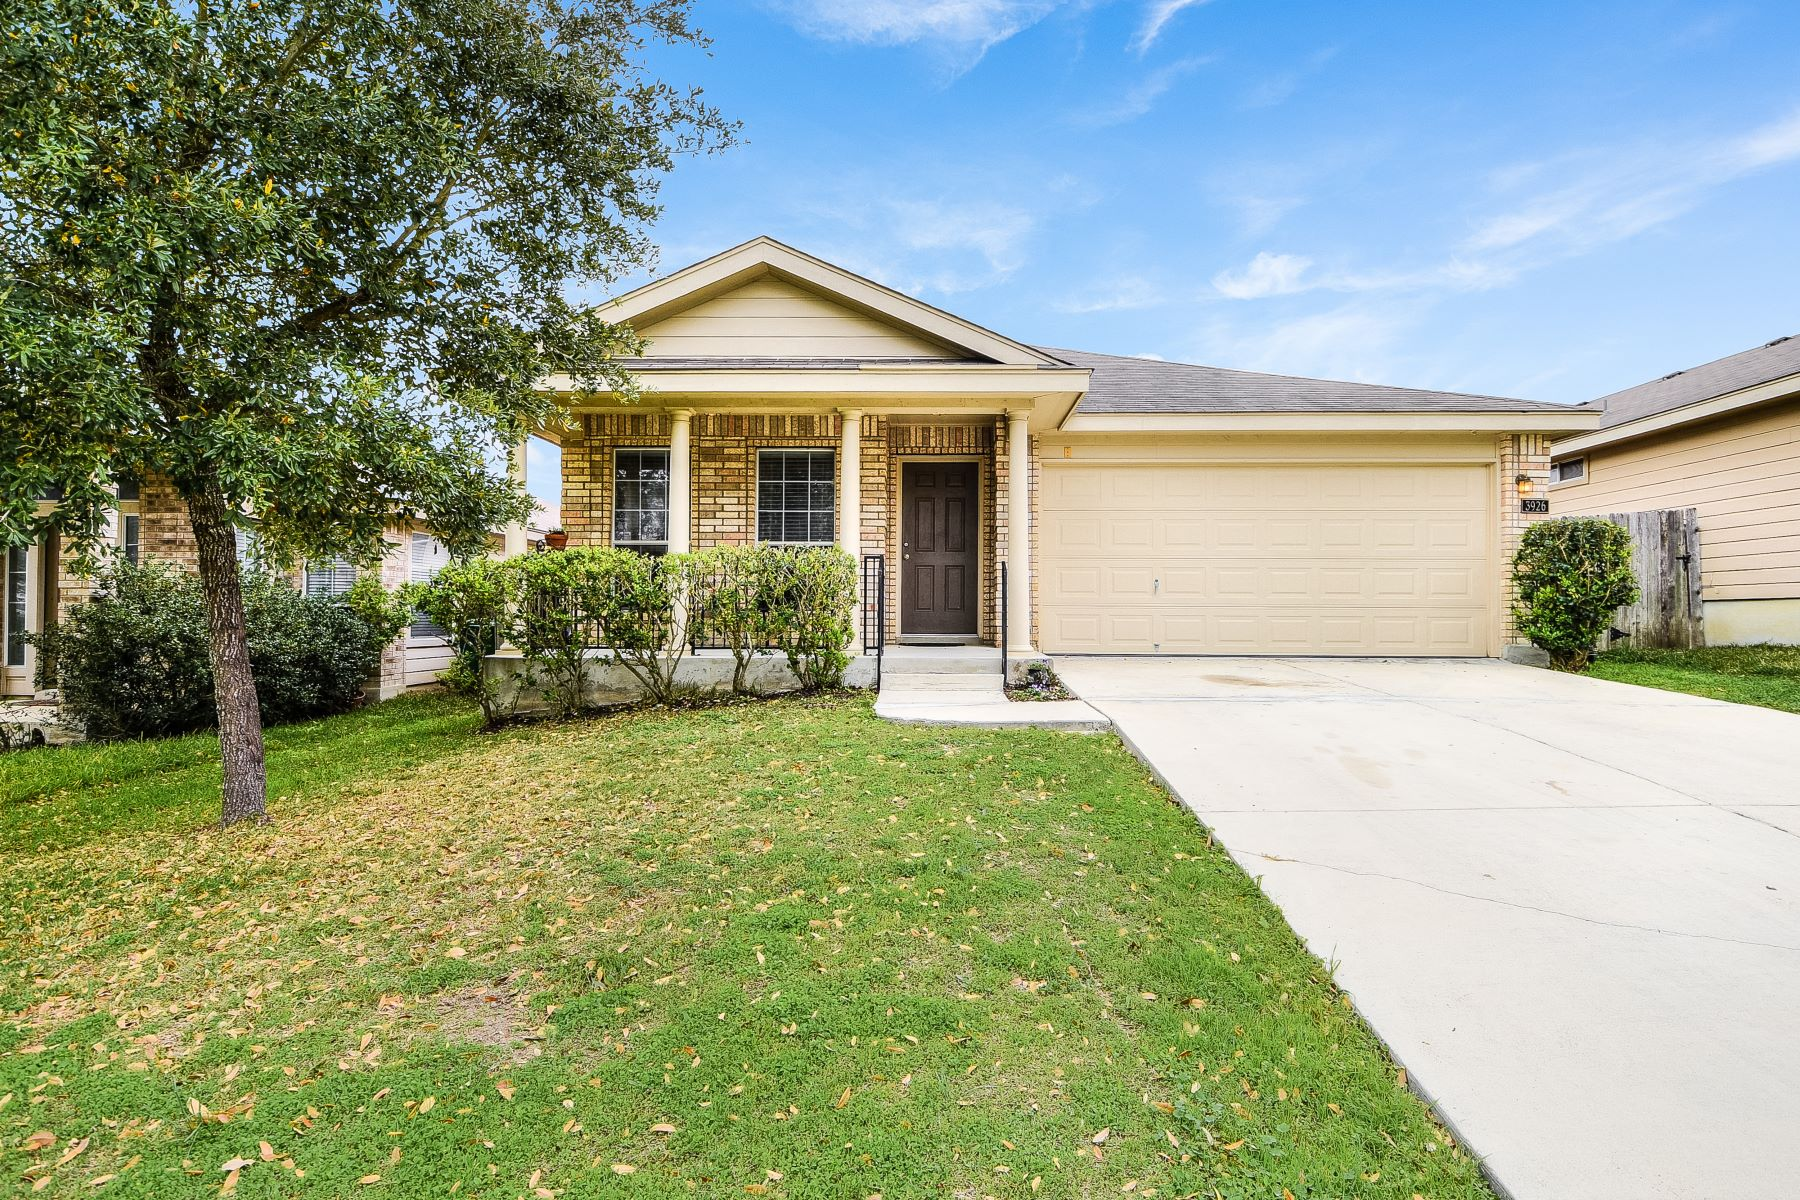 Single Family Home for Sale at Wonderful Home in Monte Viejo 3926 Nuttall Oak Drive, San Antonio, Texas, 78223 United States